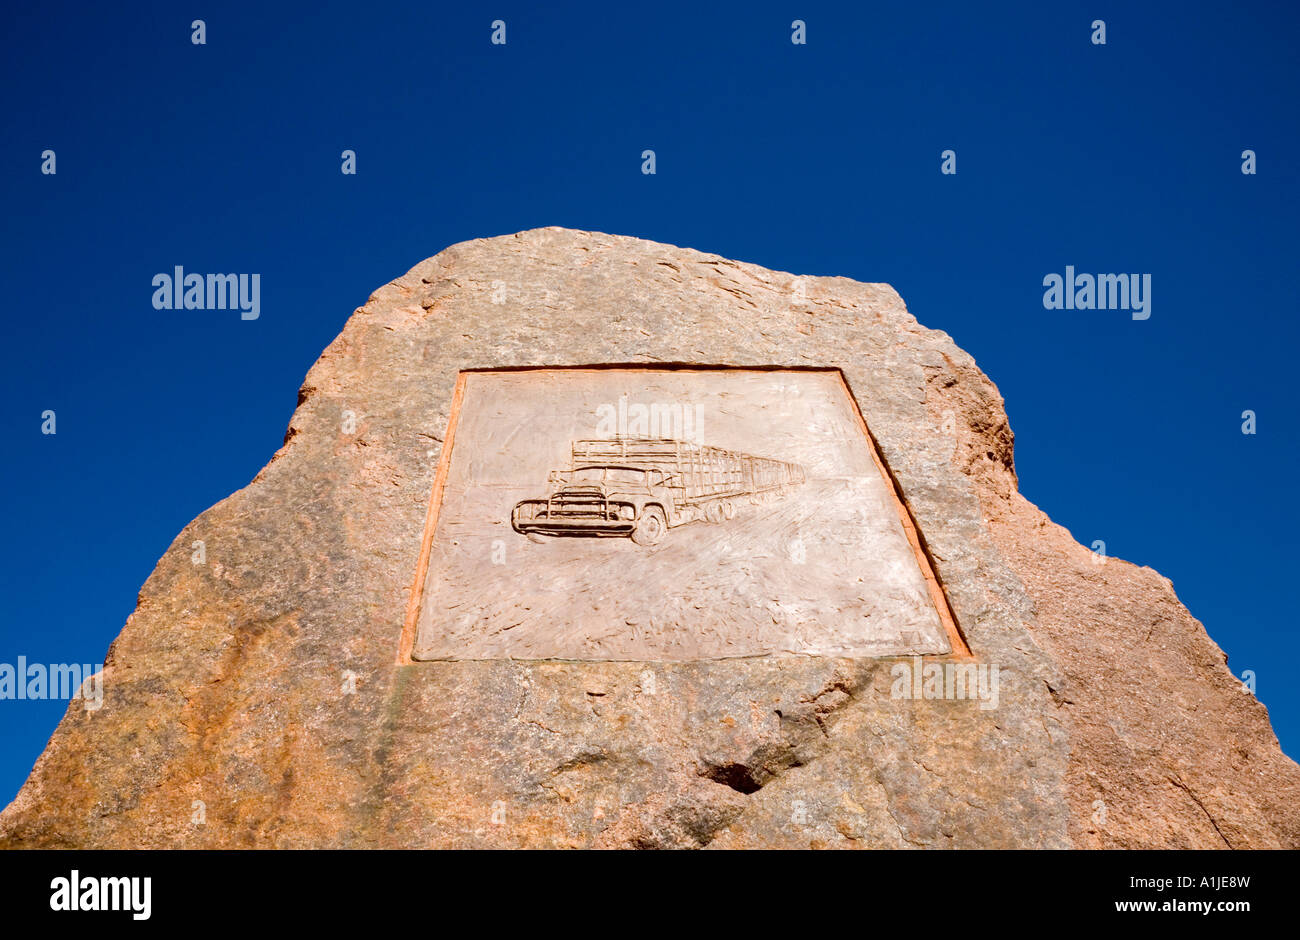 Memorial to Noel Buntine, Australian Trucking Pioneer - Stock Image